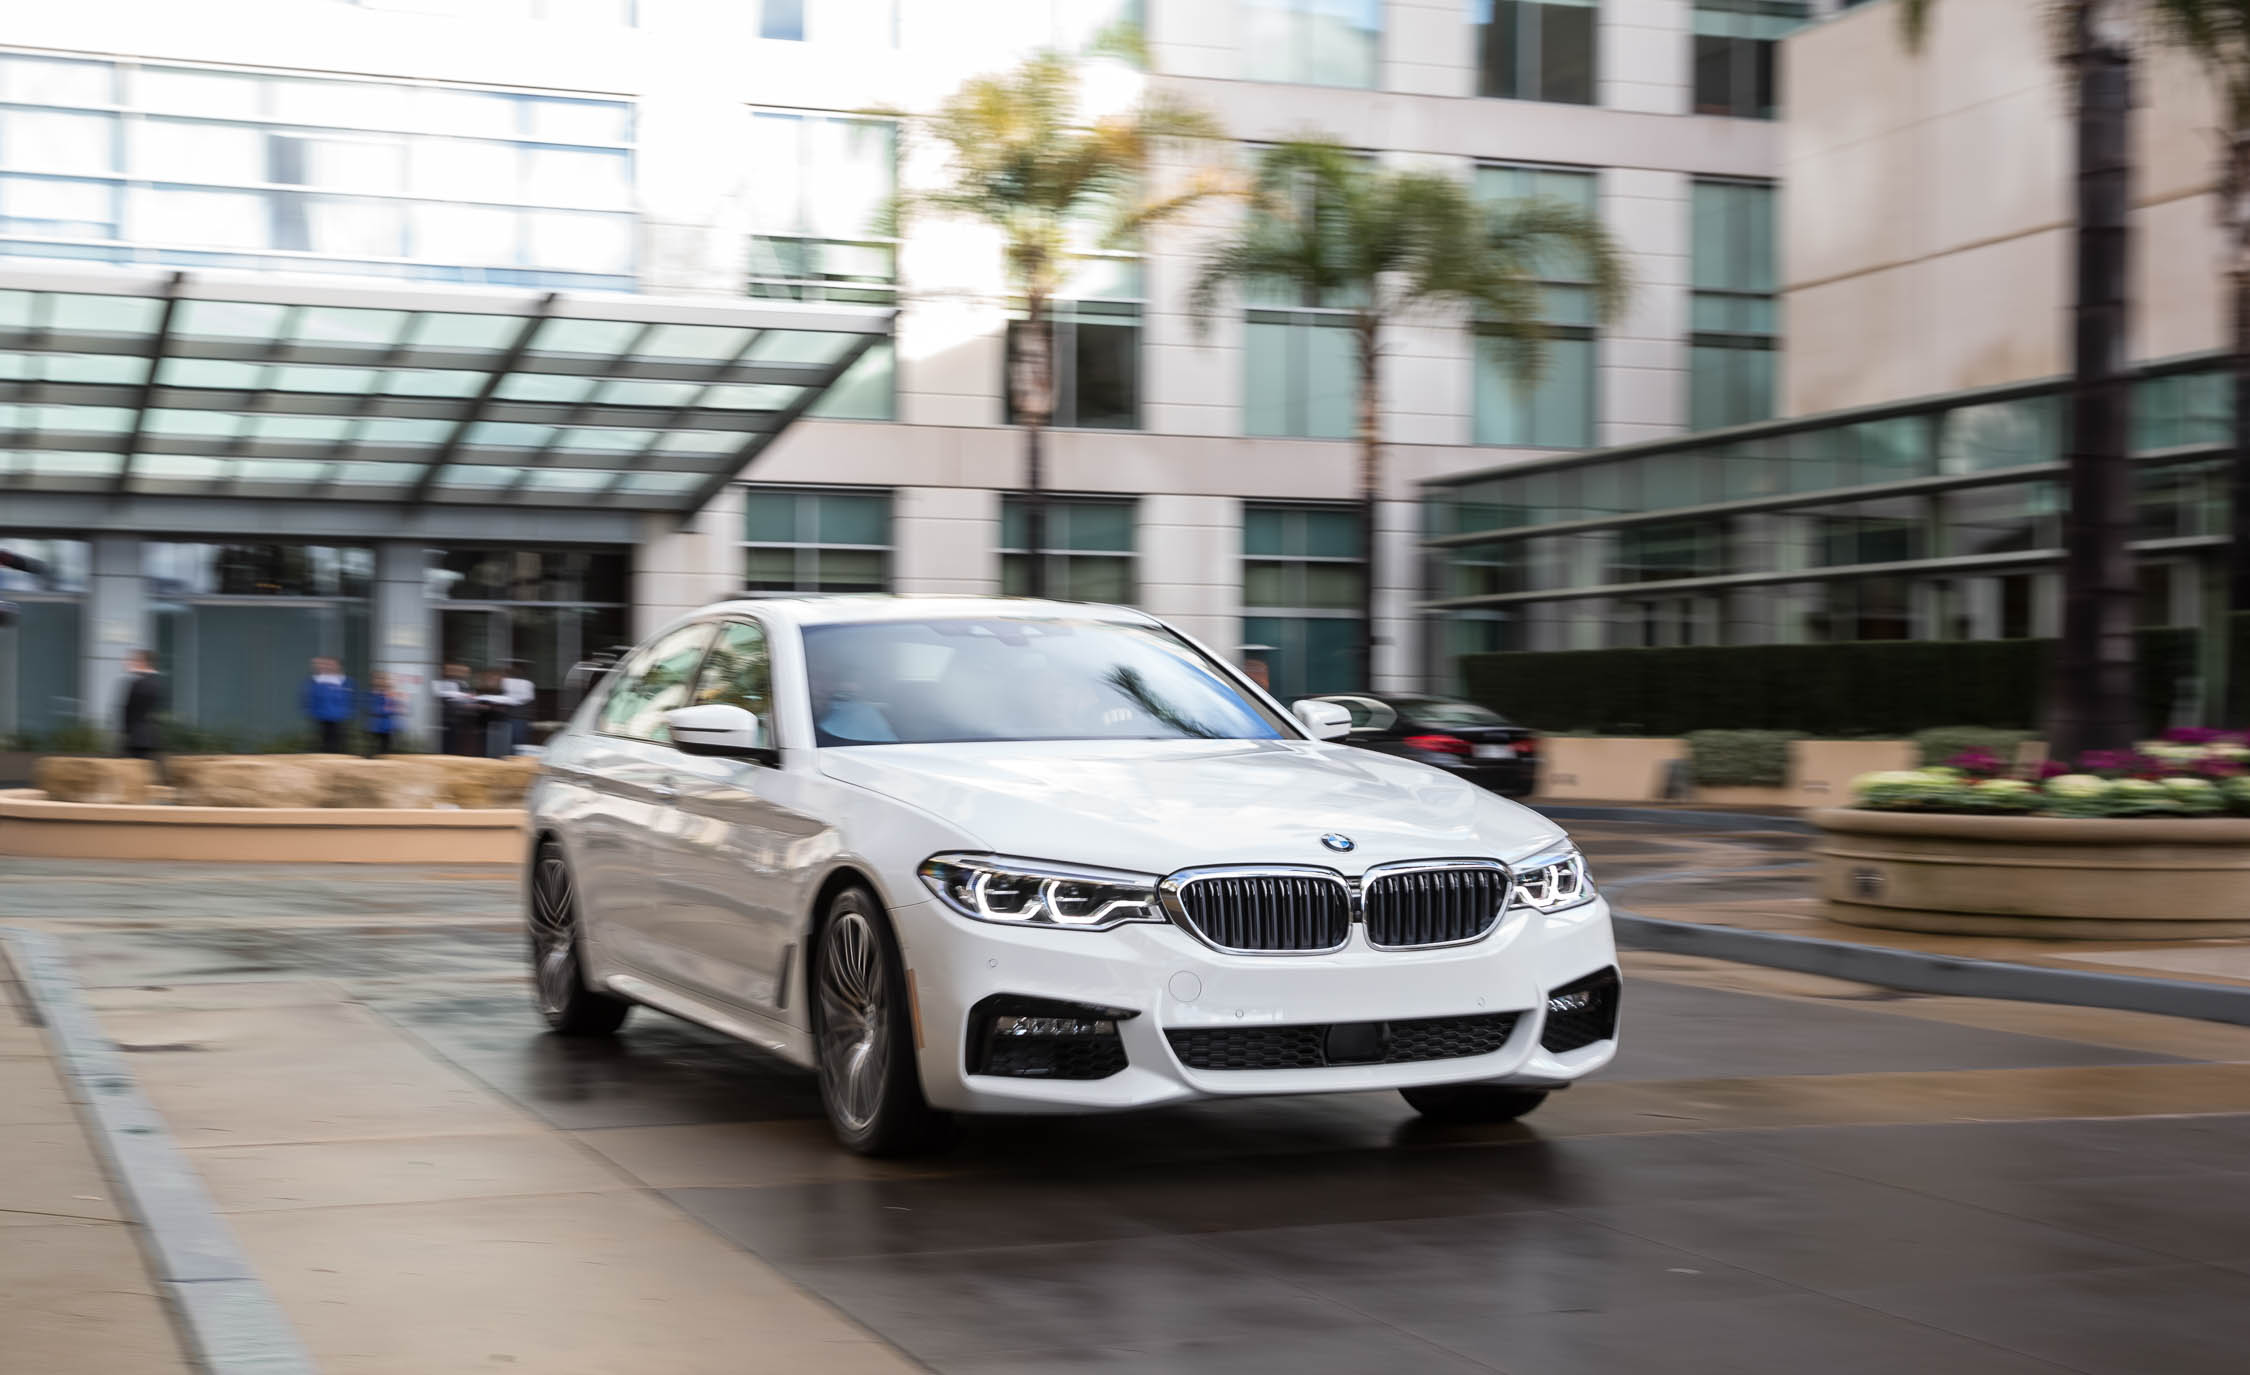 2017 BMW 530i (View 44 of 46)